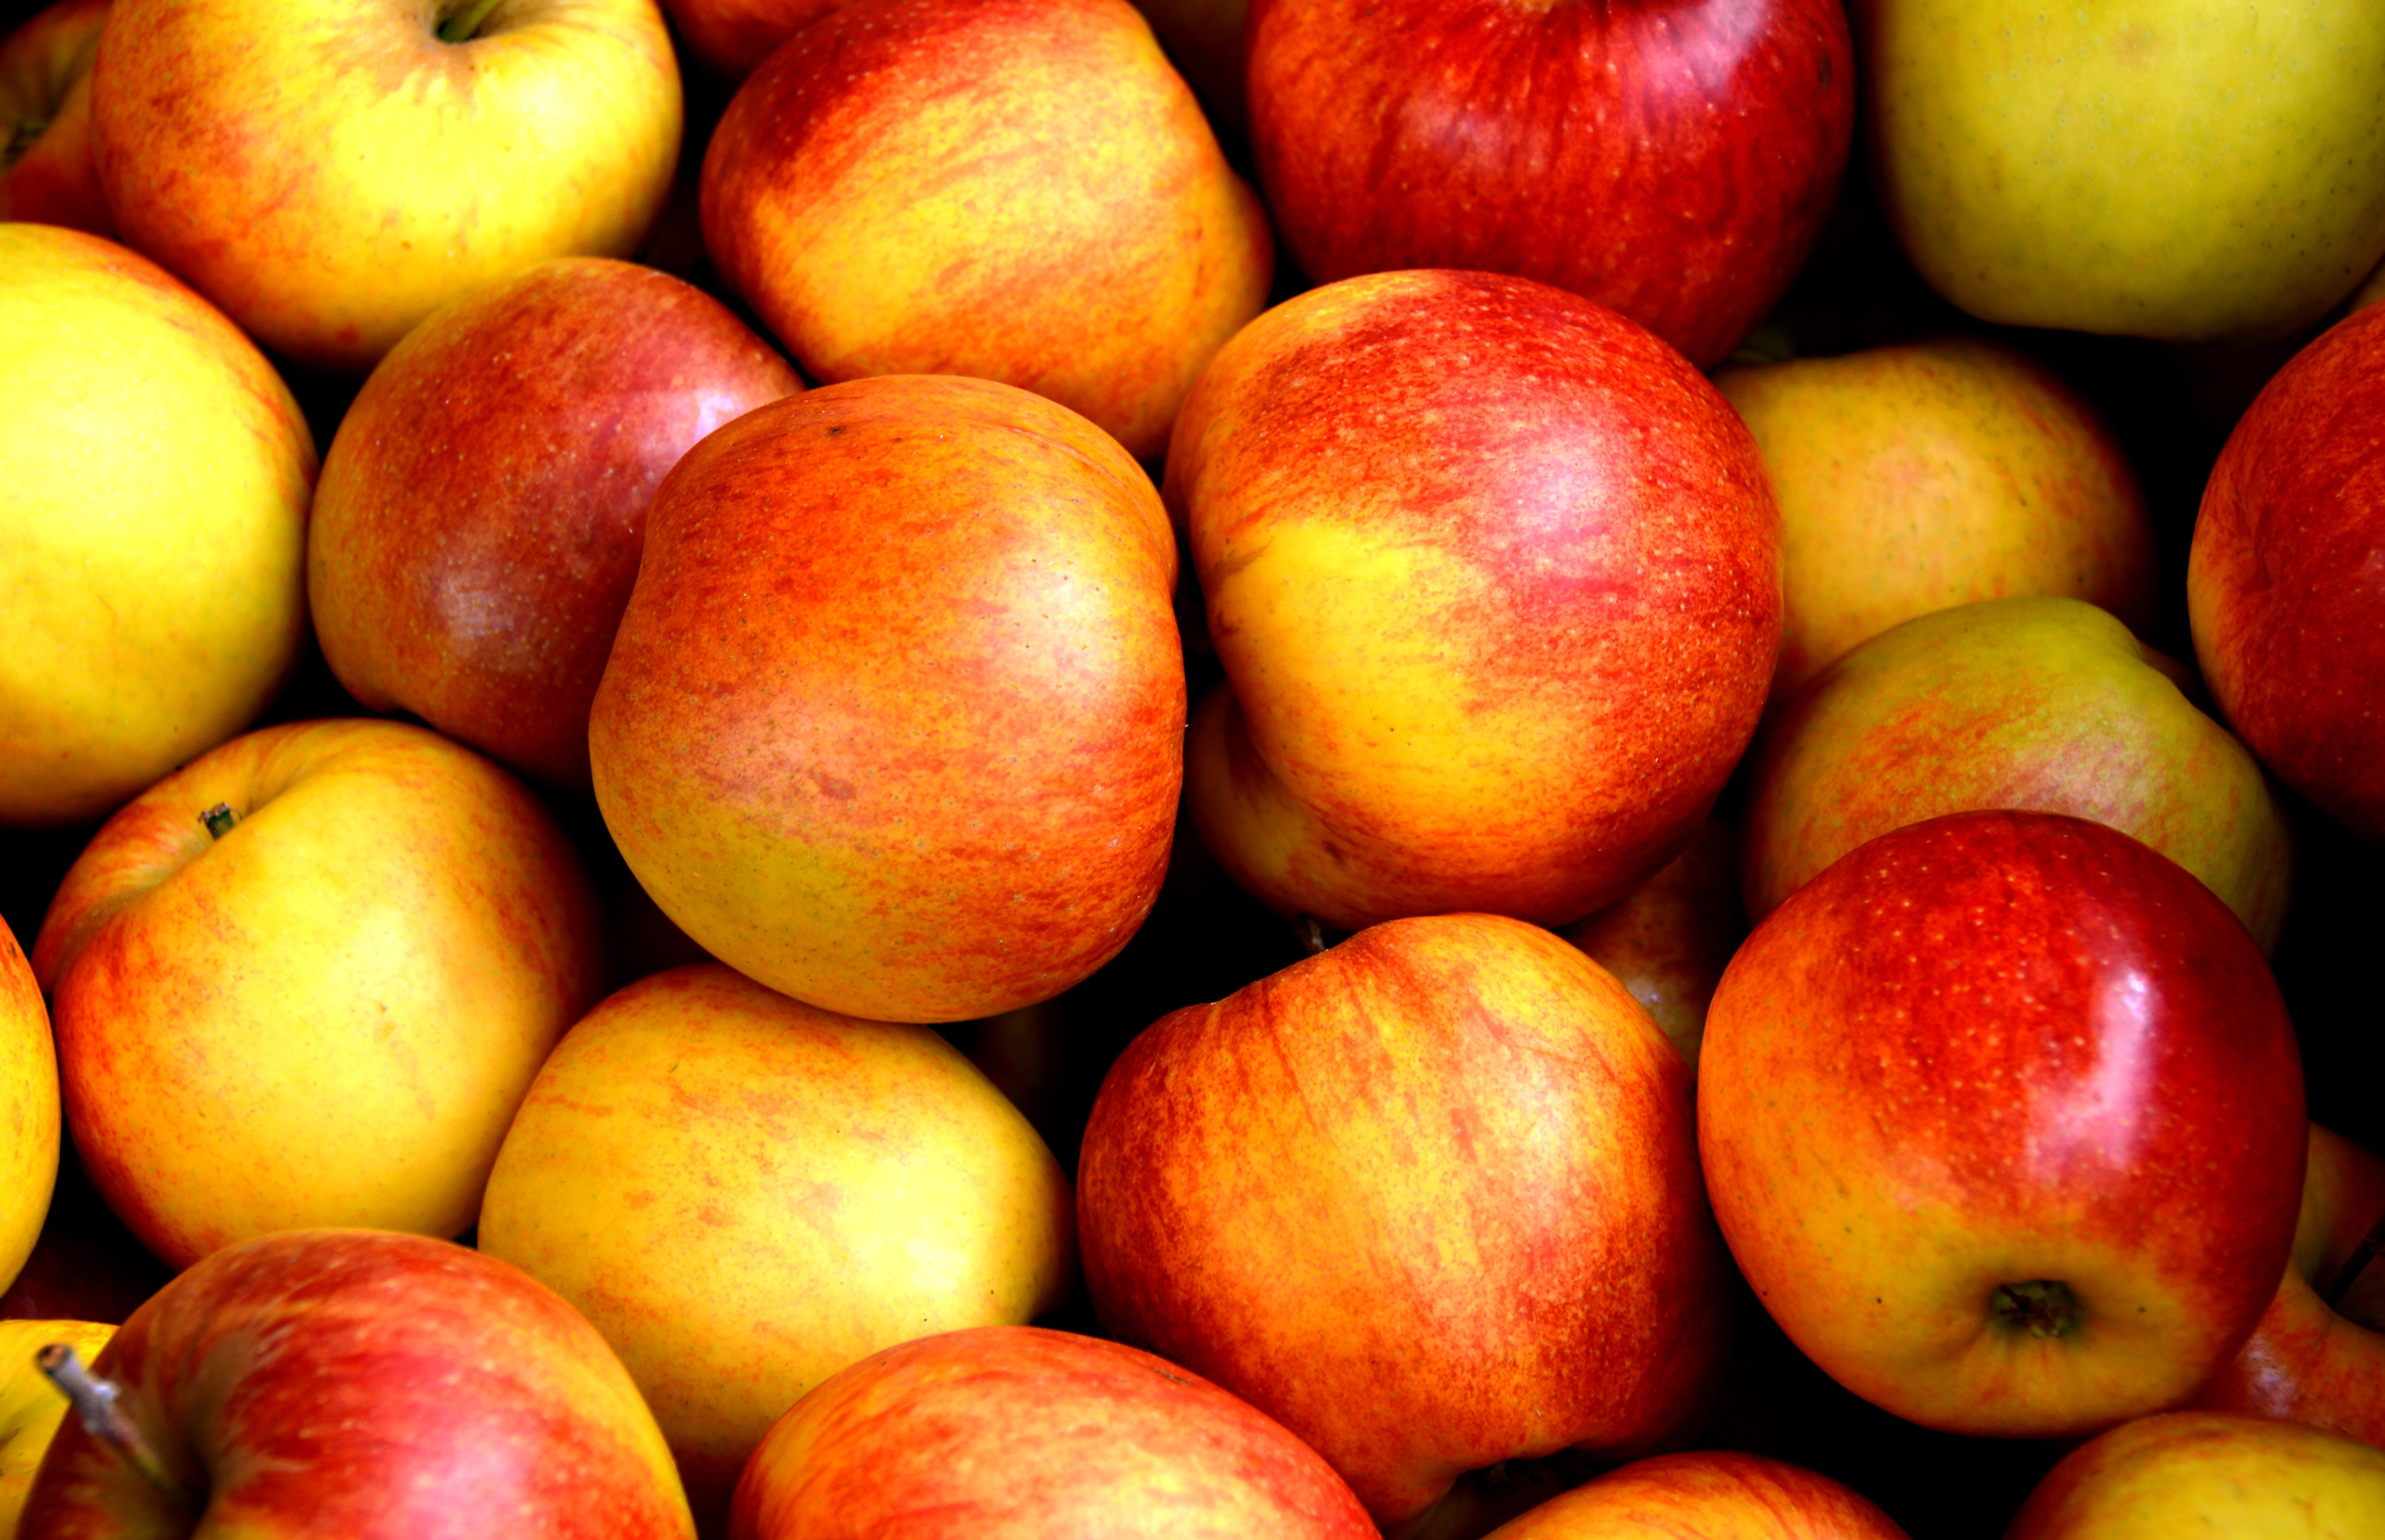 apples-close-up-delicious-162806